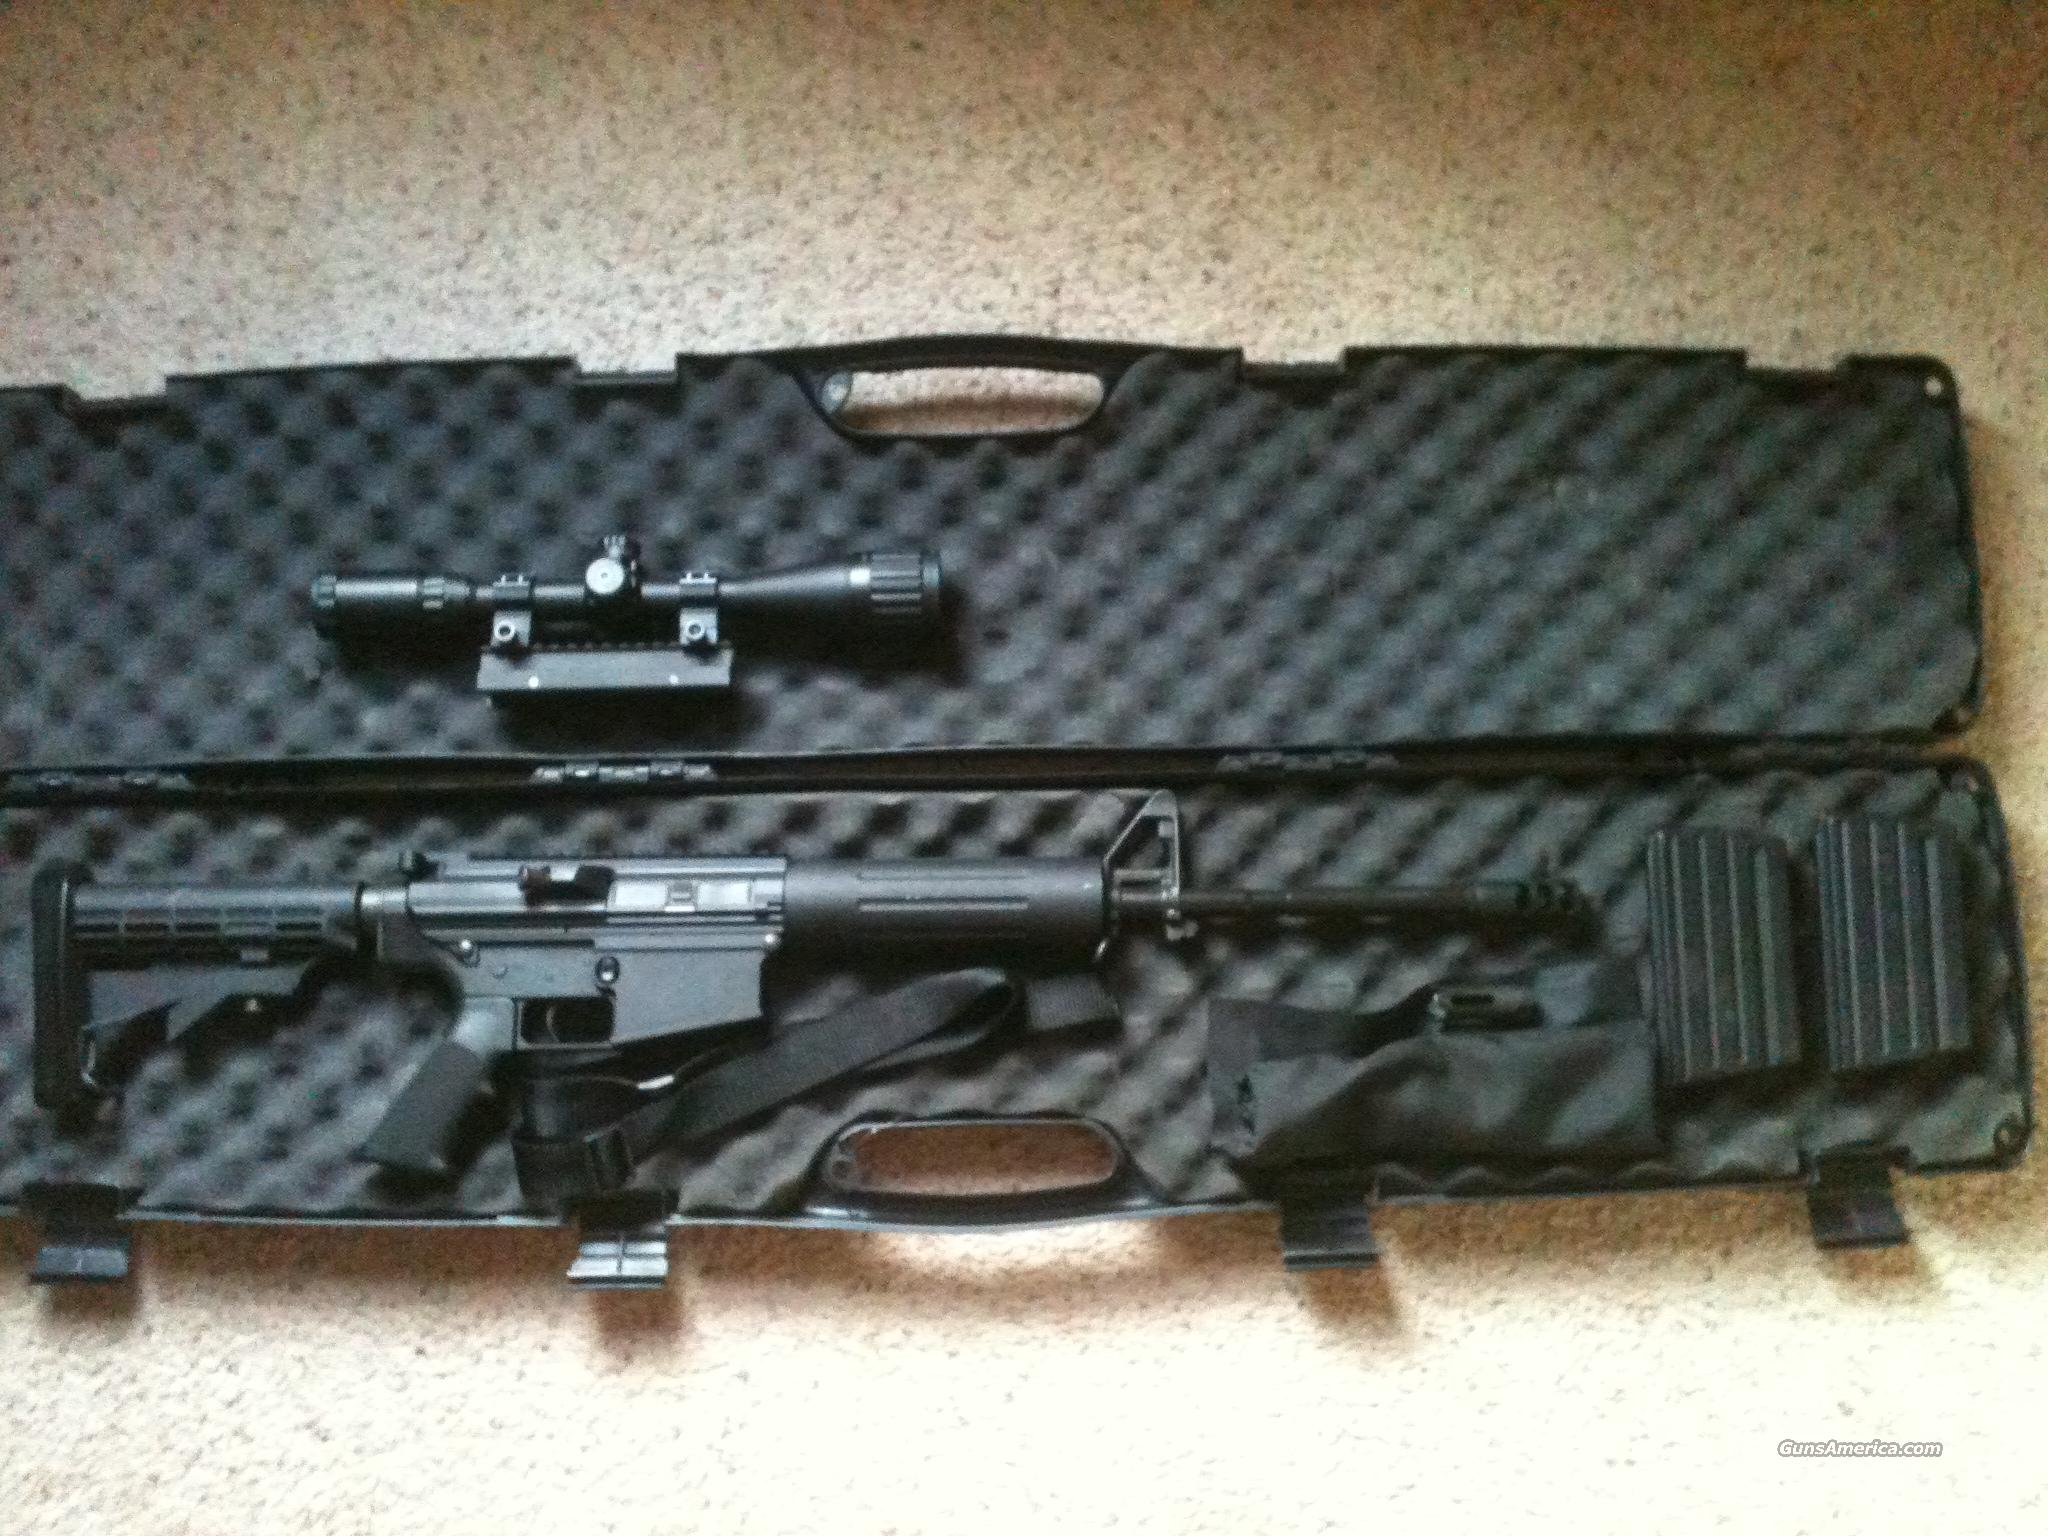 Like New DPMS LR308 AP4 .308 AR Carbine  Guns > Rifles > AR-15 Rifles - Small Manufacturers > Complete Rifle